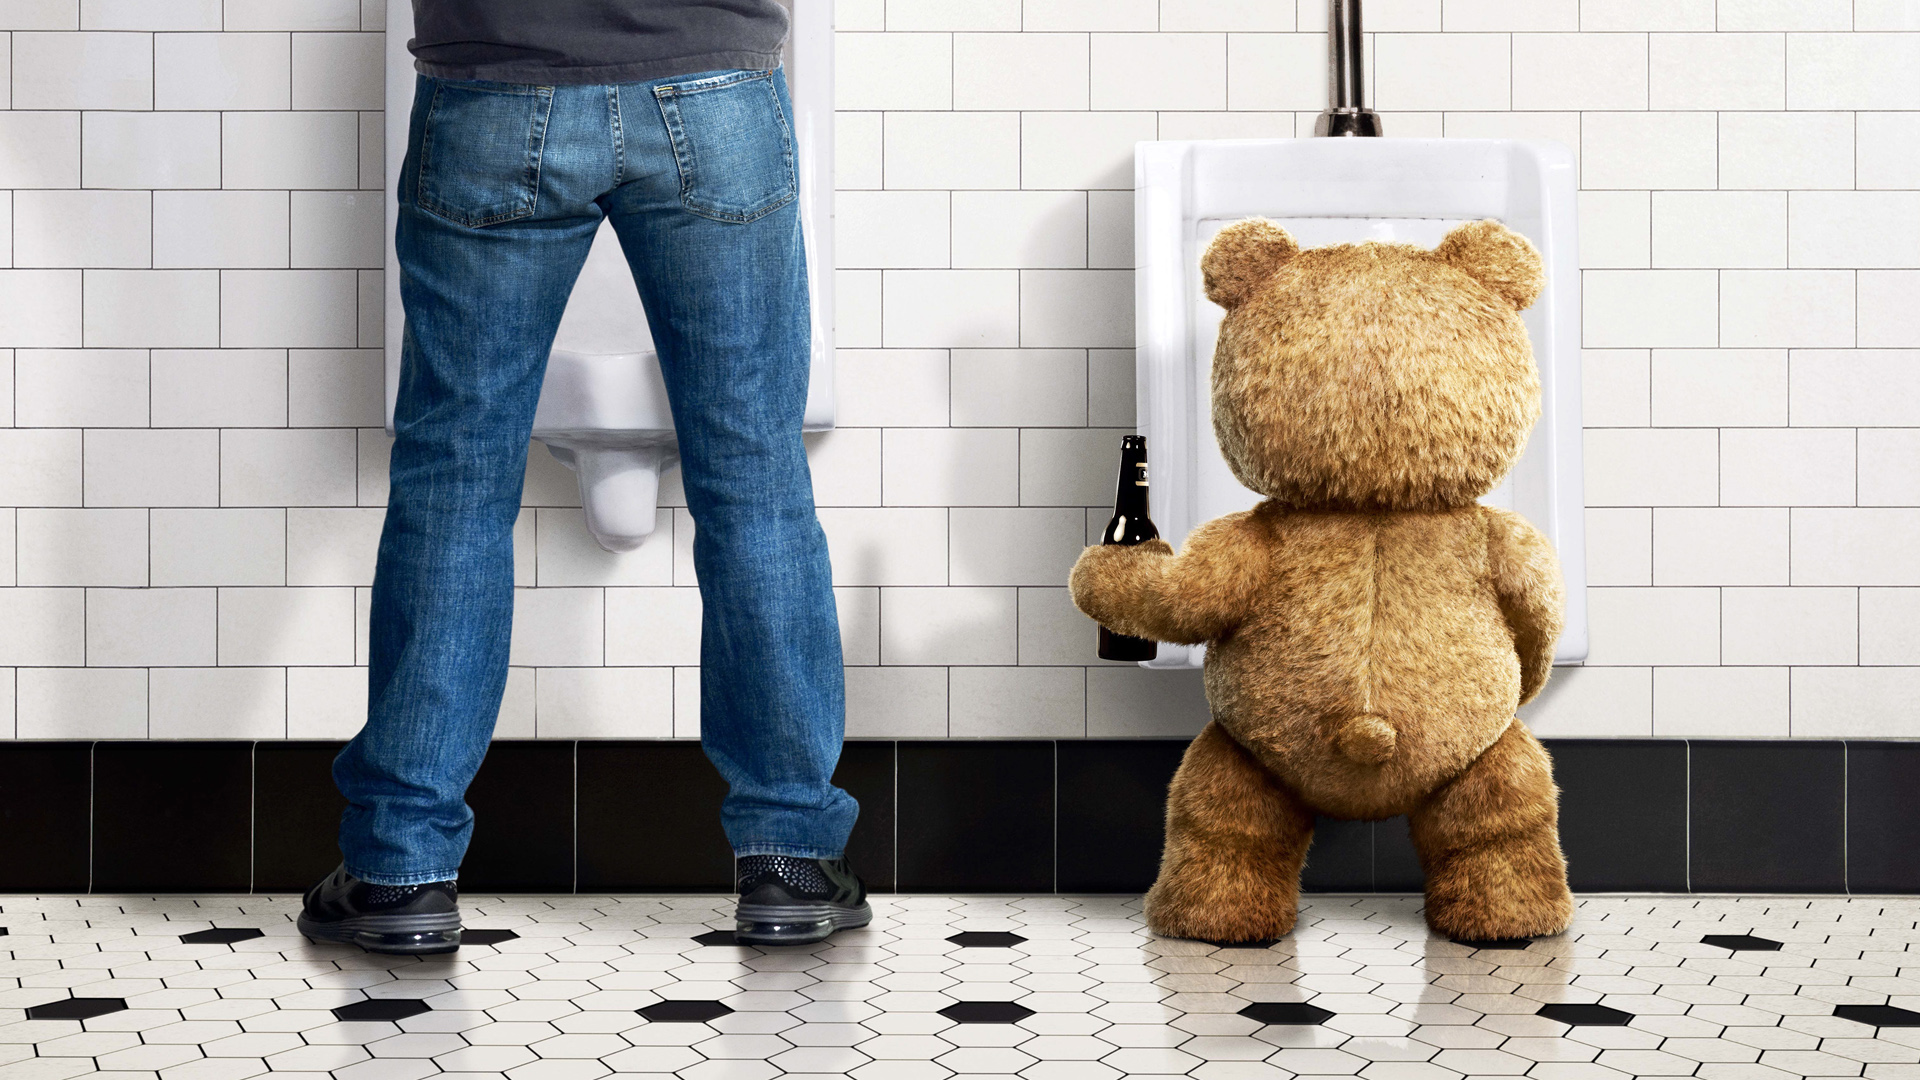 Ted full hd wallpaper and background image 1920x1080 id817647 movie ted ted movie character wallpaper voltagebd Choice Image